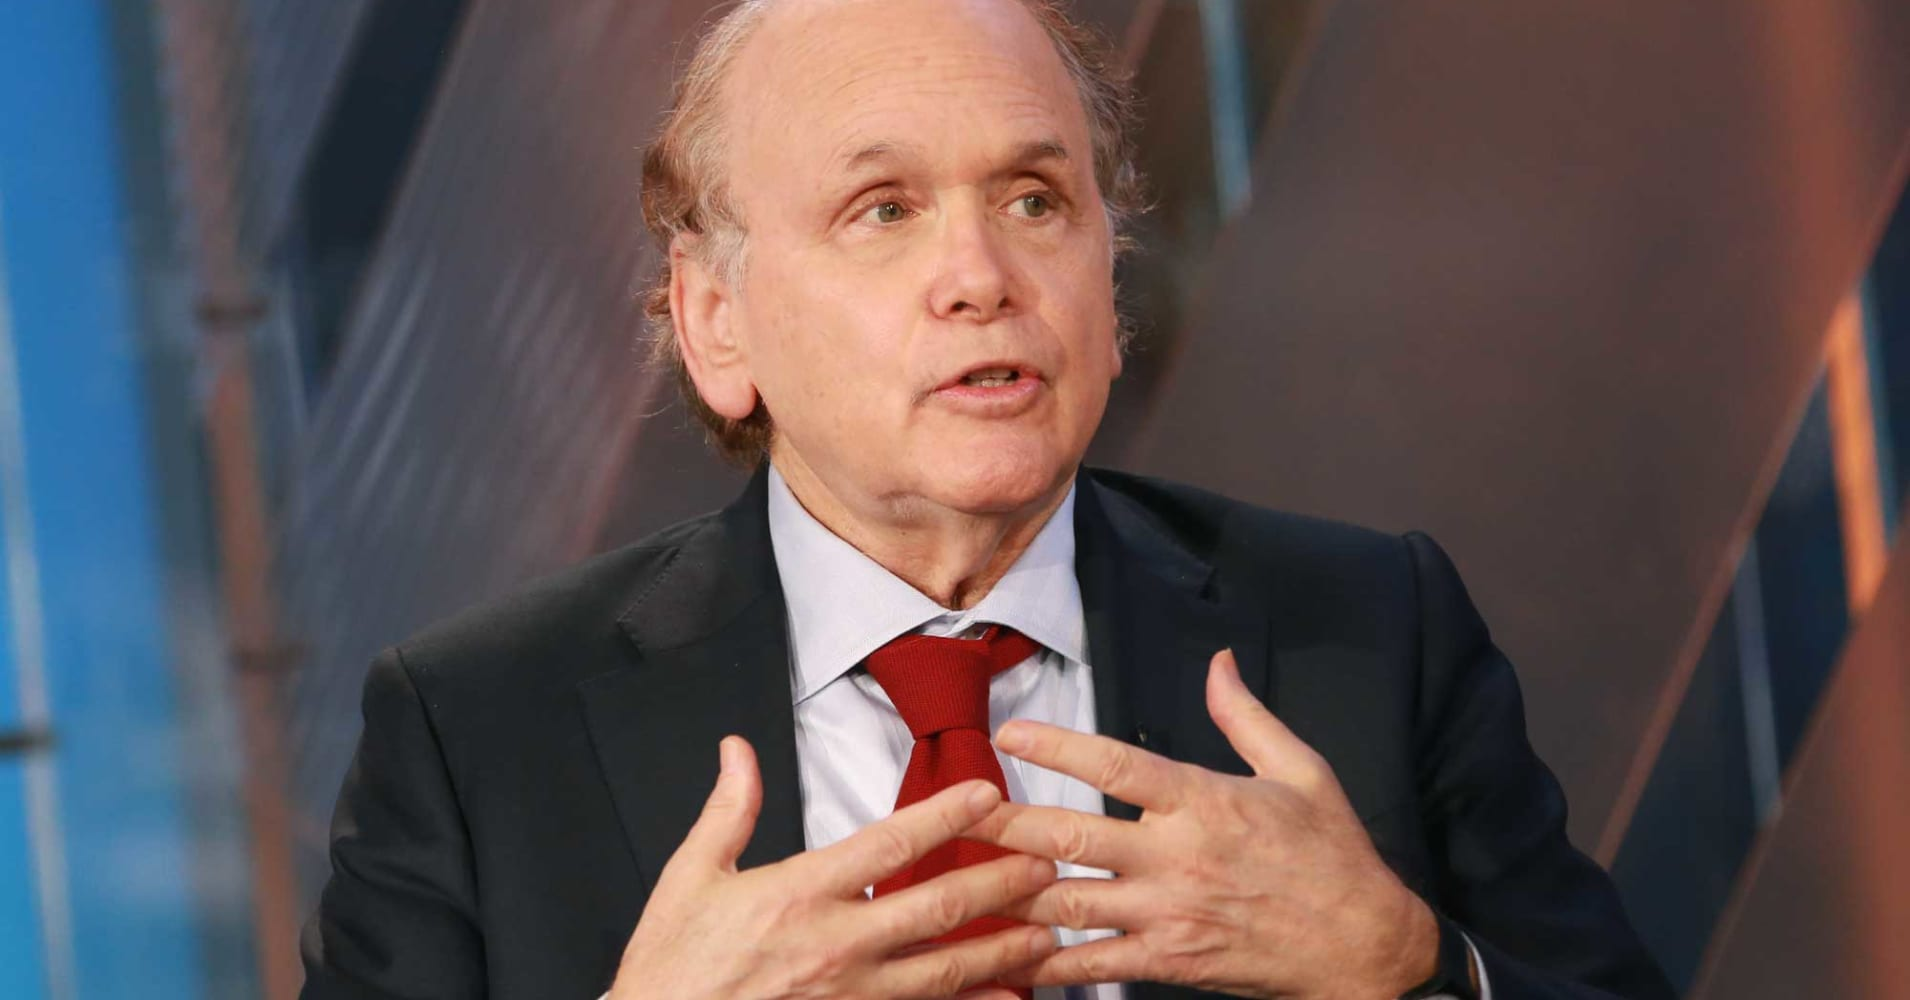 Dan Yergin on disclosing climate-related risk: Let's get it right the first time